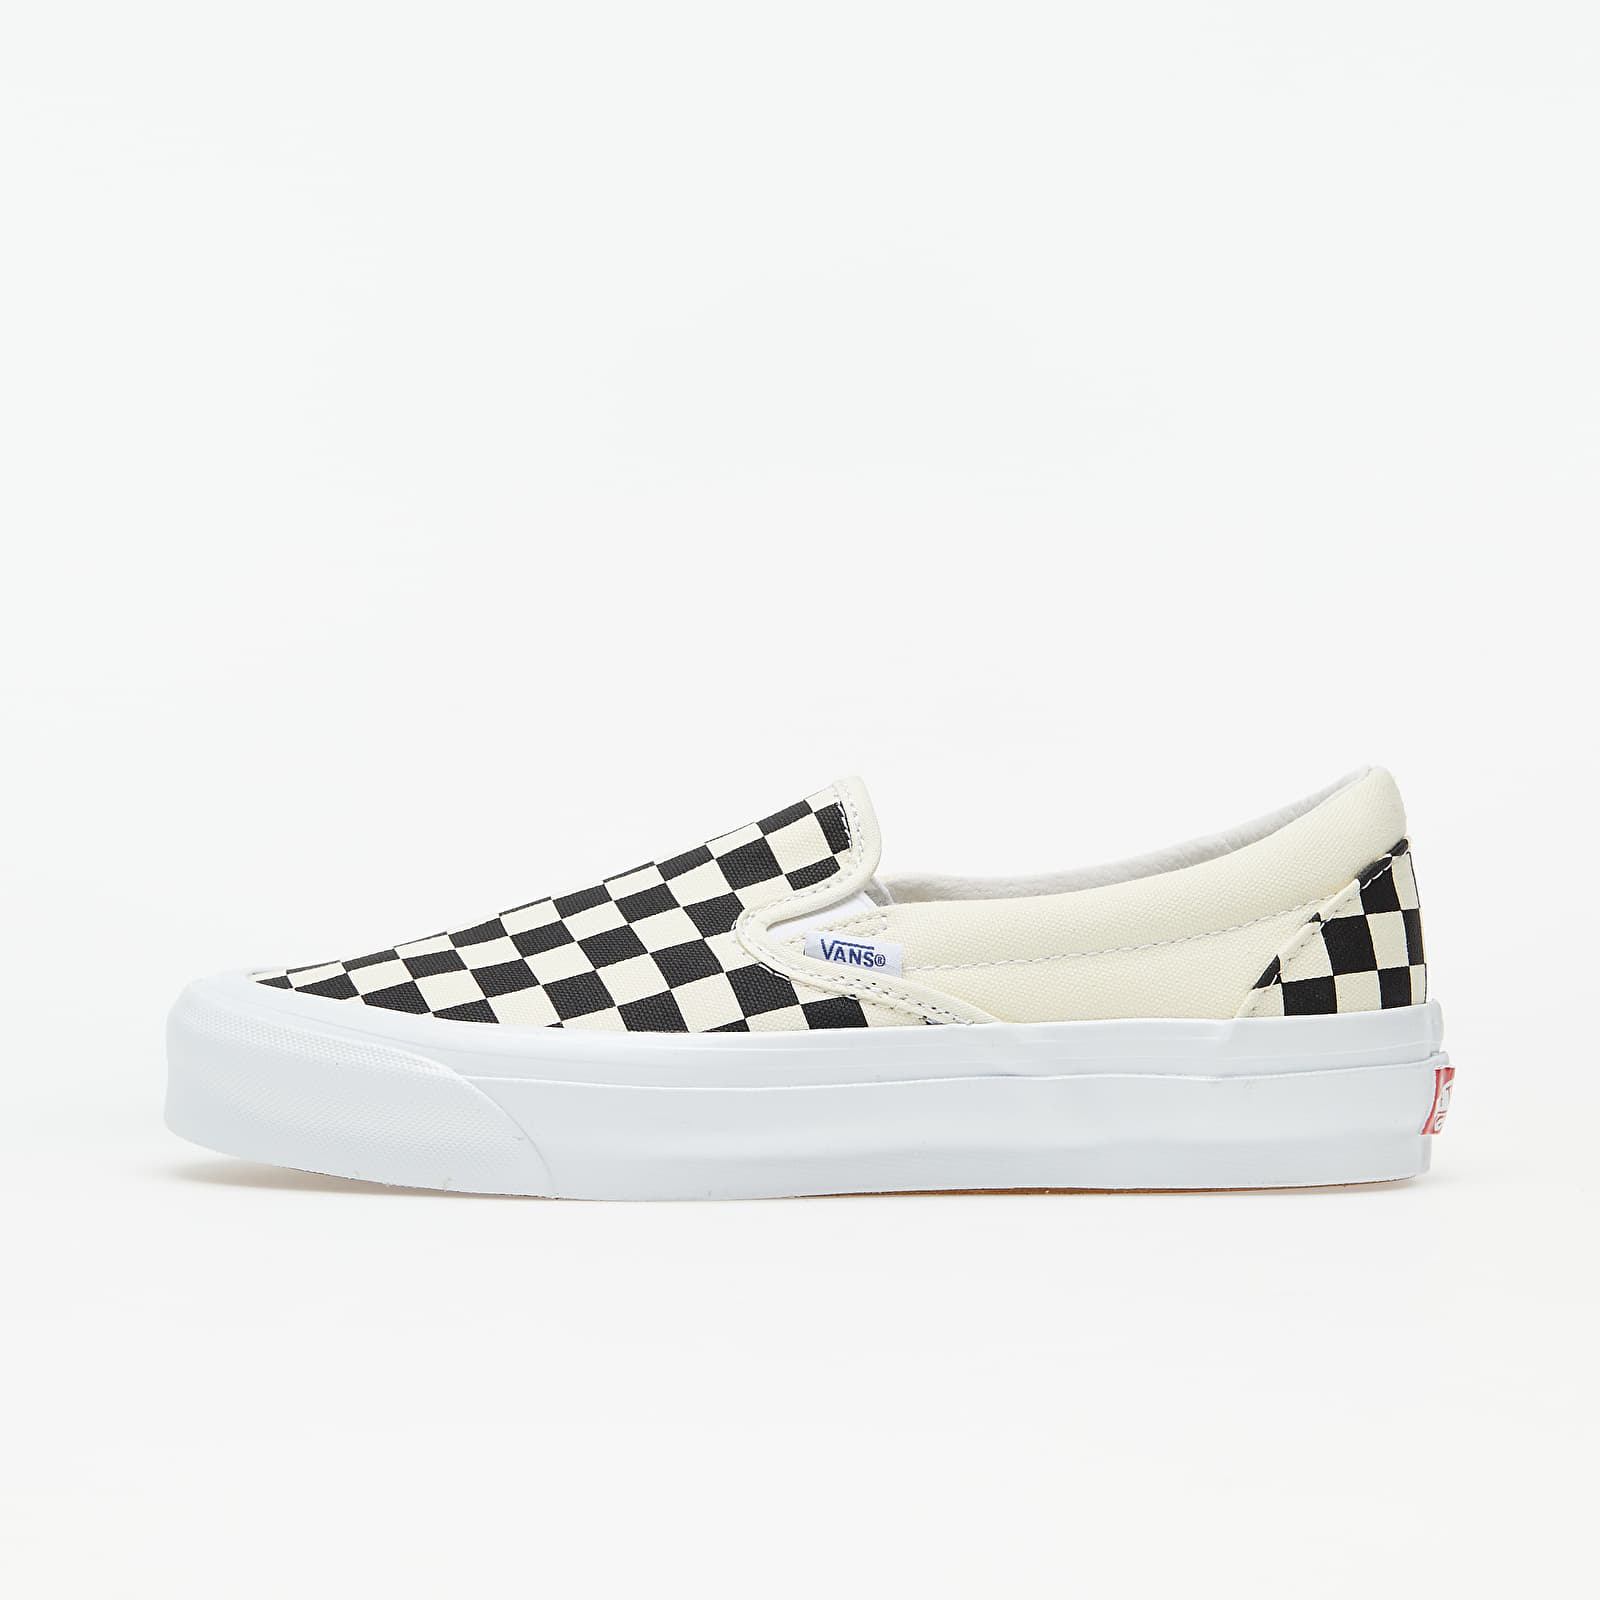 Chaussures et baskets homme Vans OG Classic Slip-On (Canvas) Checkerboard